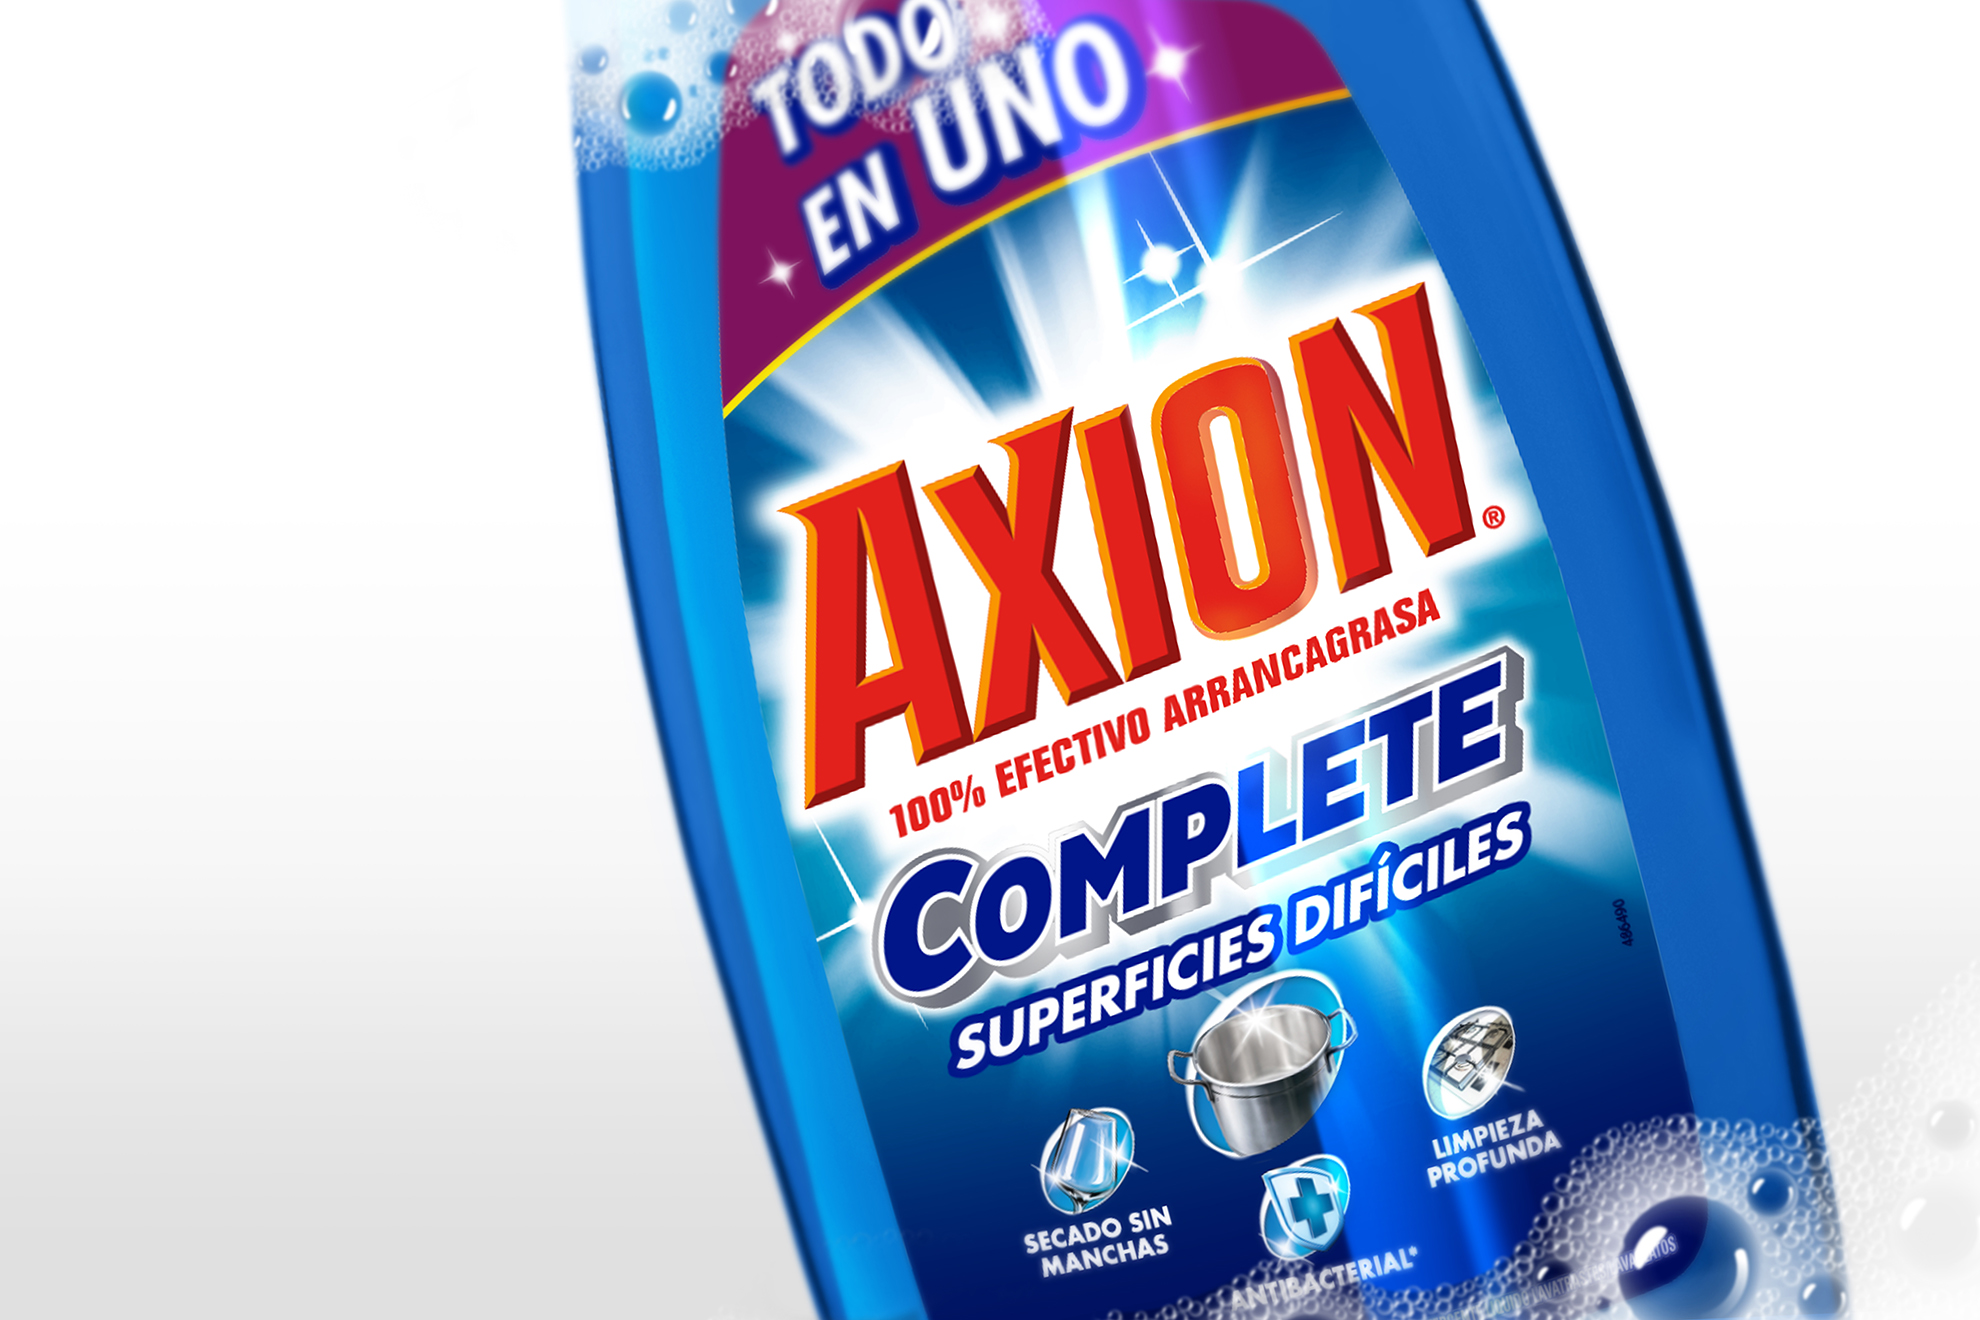 Axion Complete